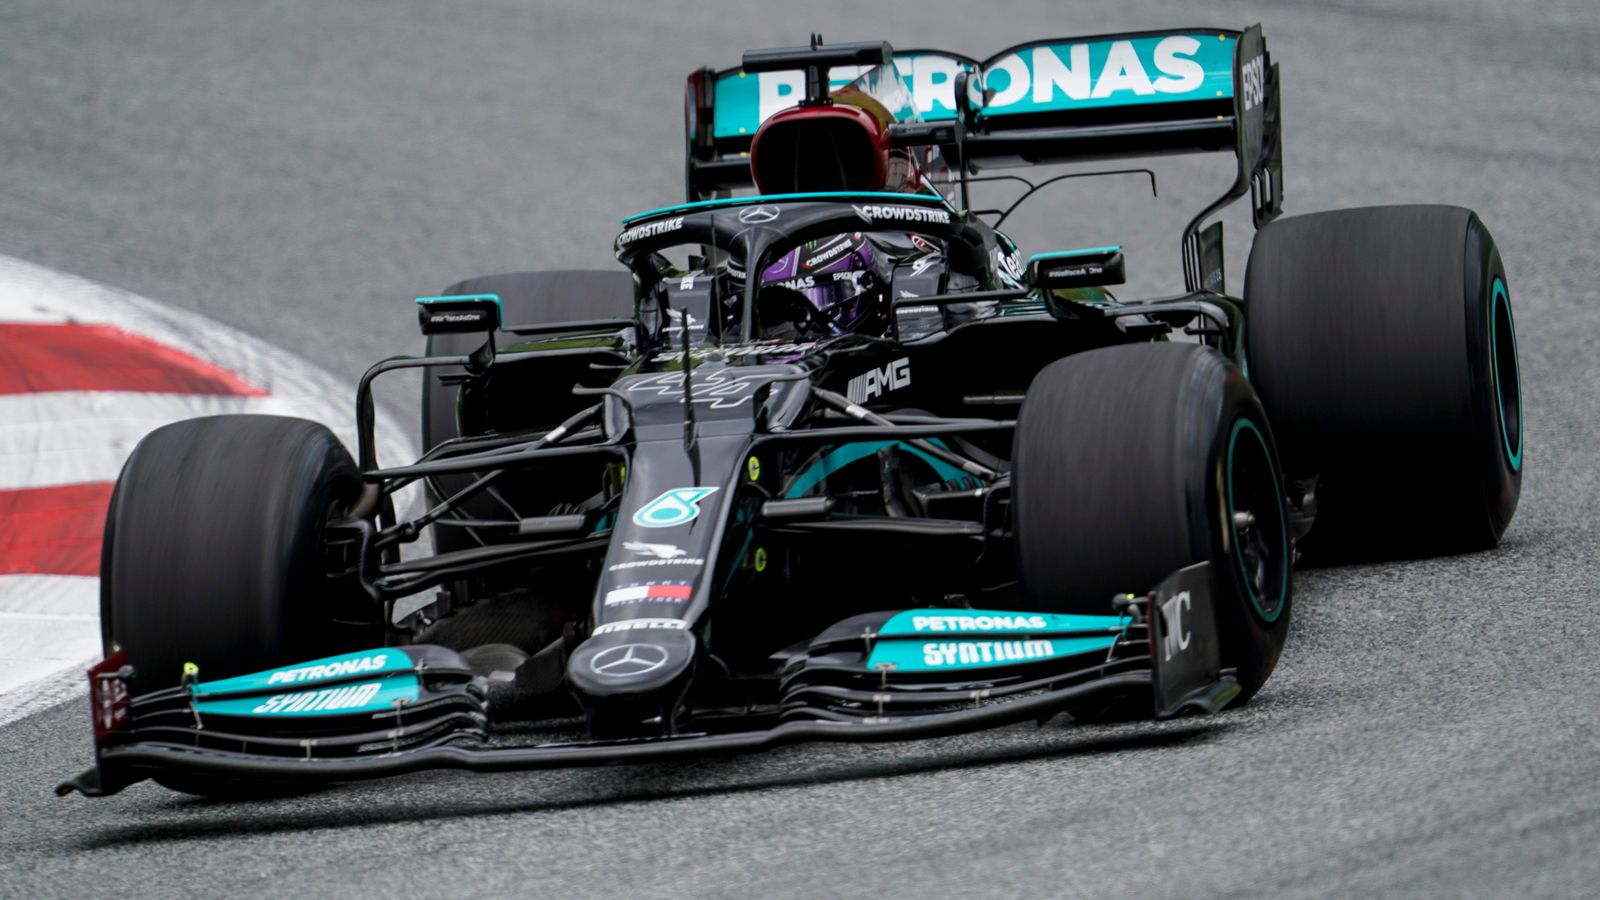 Austrian GP: Lewis Hamilton fastest in Practice Two as Mercedes get back ahead of Max Verstappen